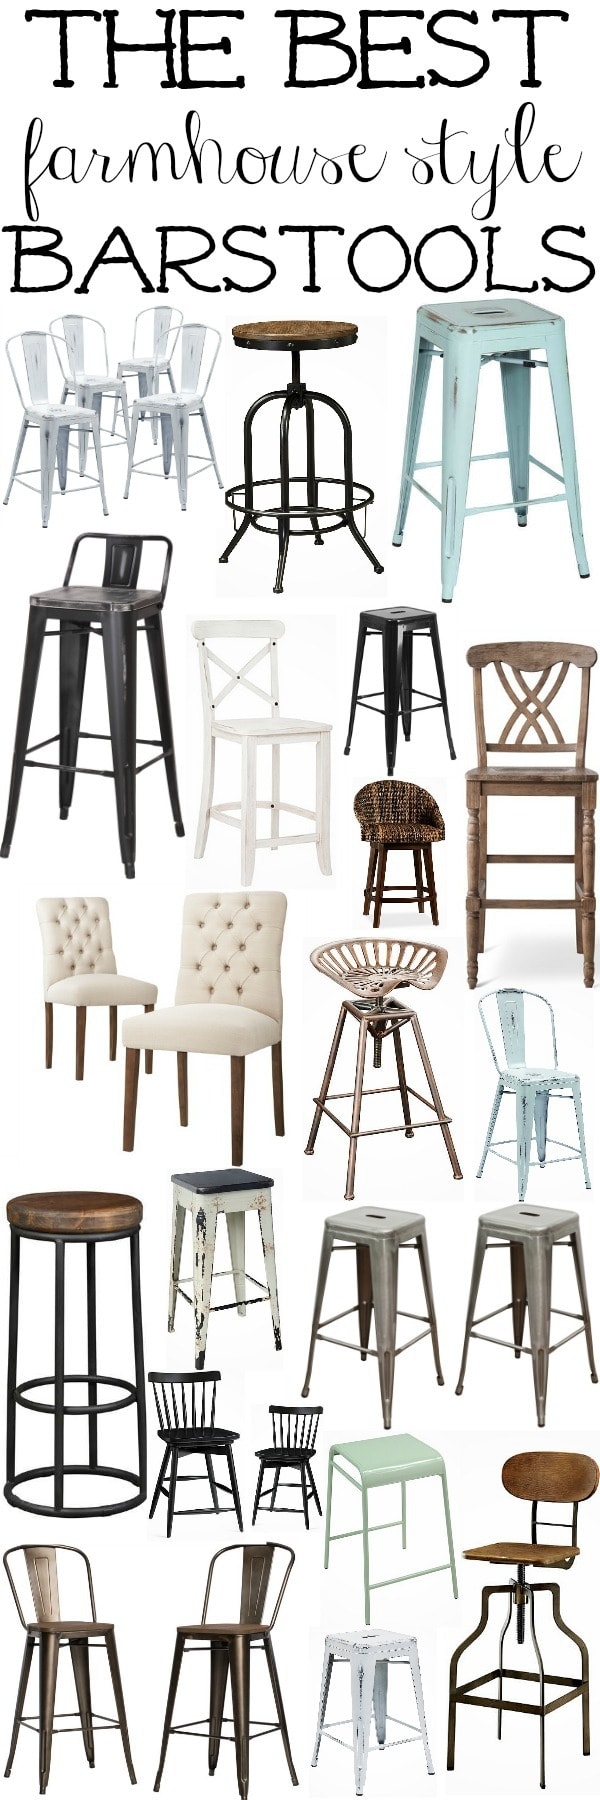 The best farmhouse style barstools - Great source for farmhouse decor for every room of the house!